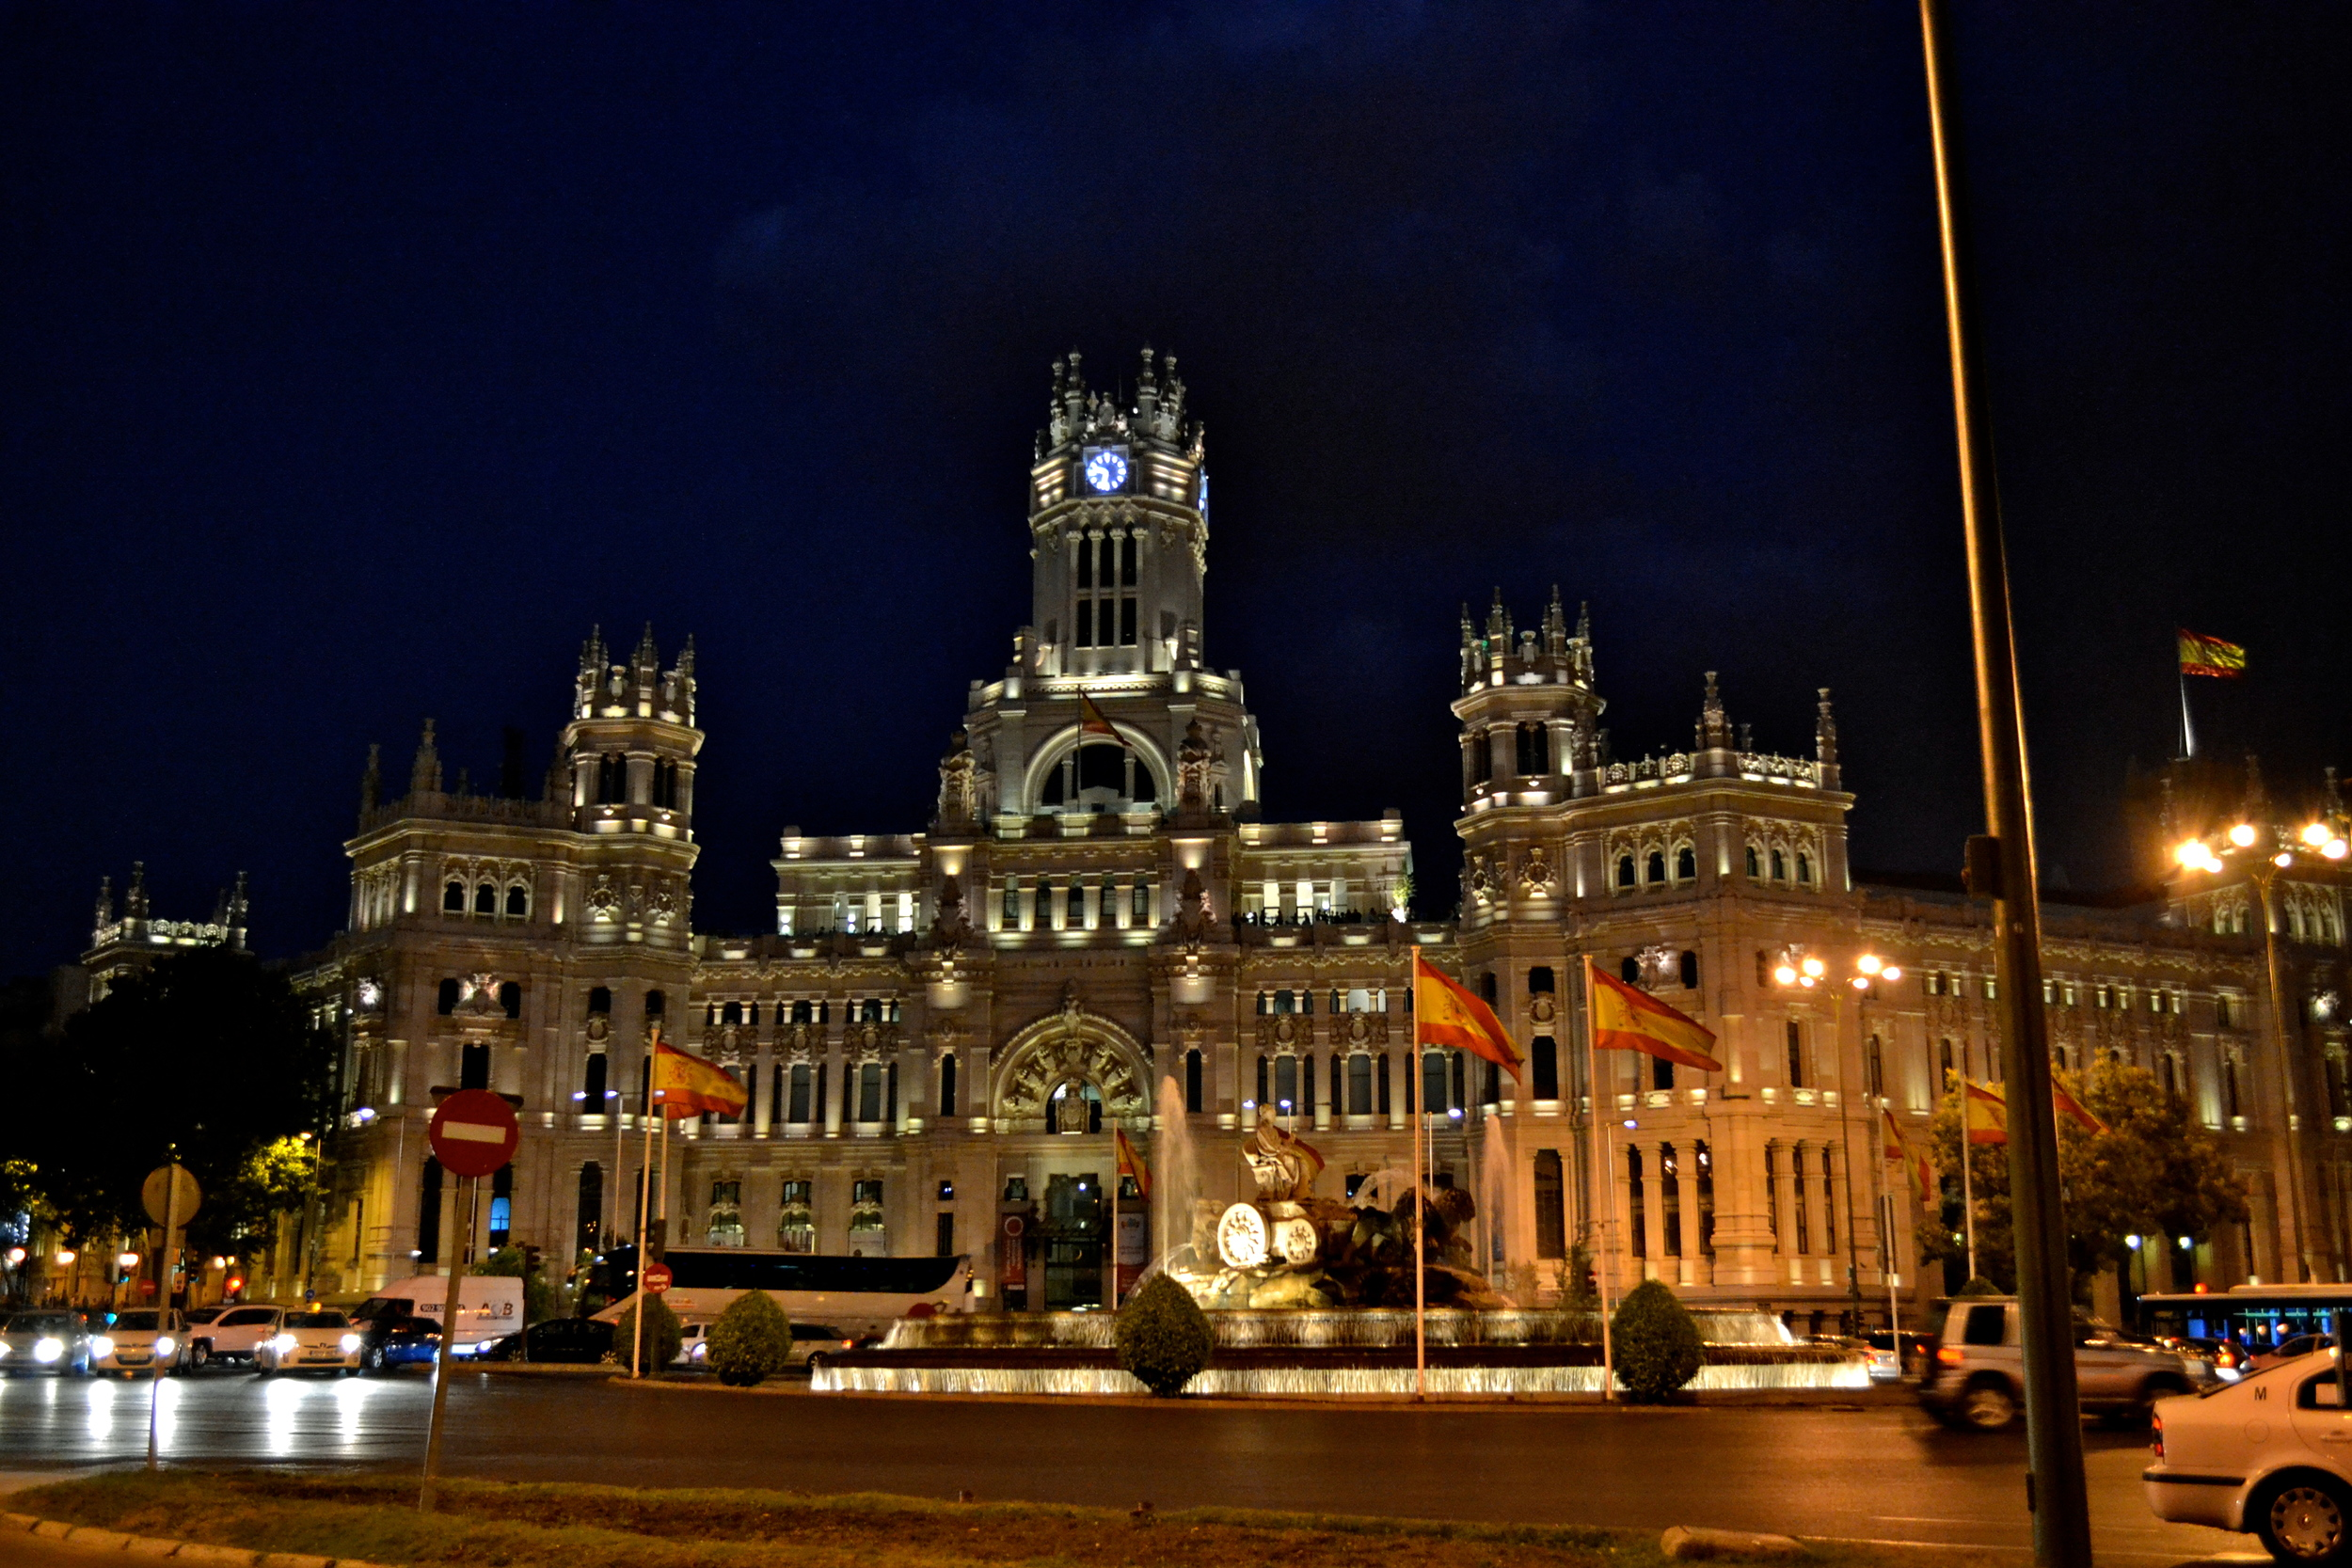 Palacio de Cibeles,  the city hall of Madrid. It was originally the postal service's headquarters.